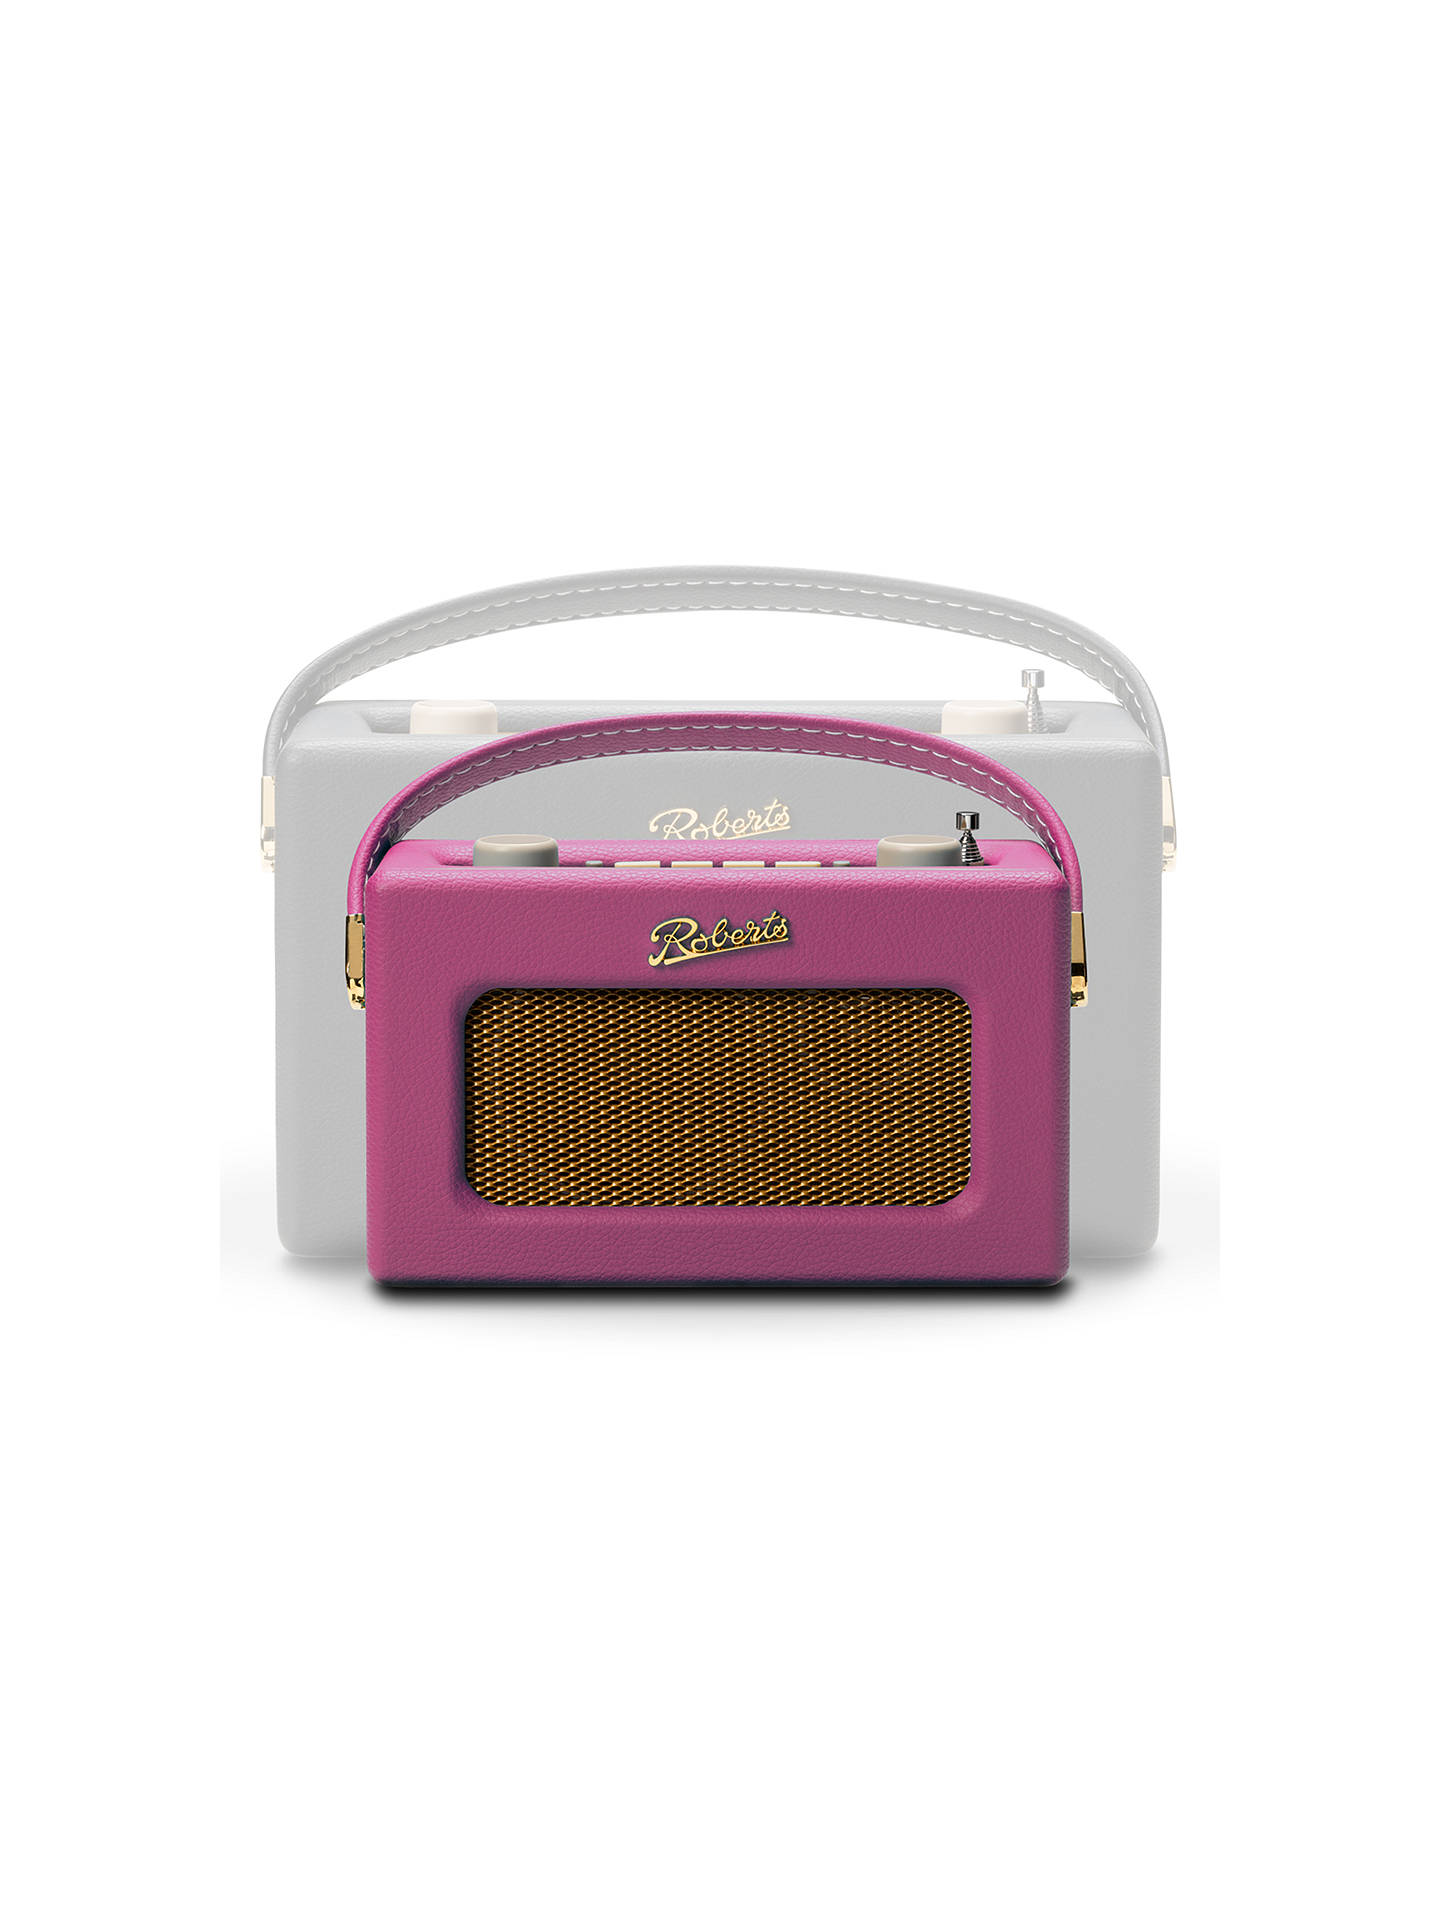 Buy ROBERTS Revival Uno DAB/DAB+/FM Digital Radio with Alarm, Pink Cadillac Online at johnlewis.com